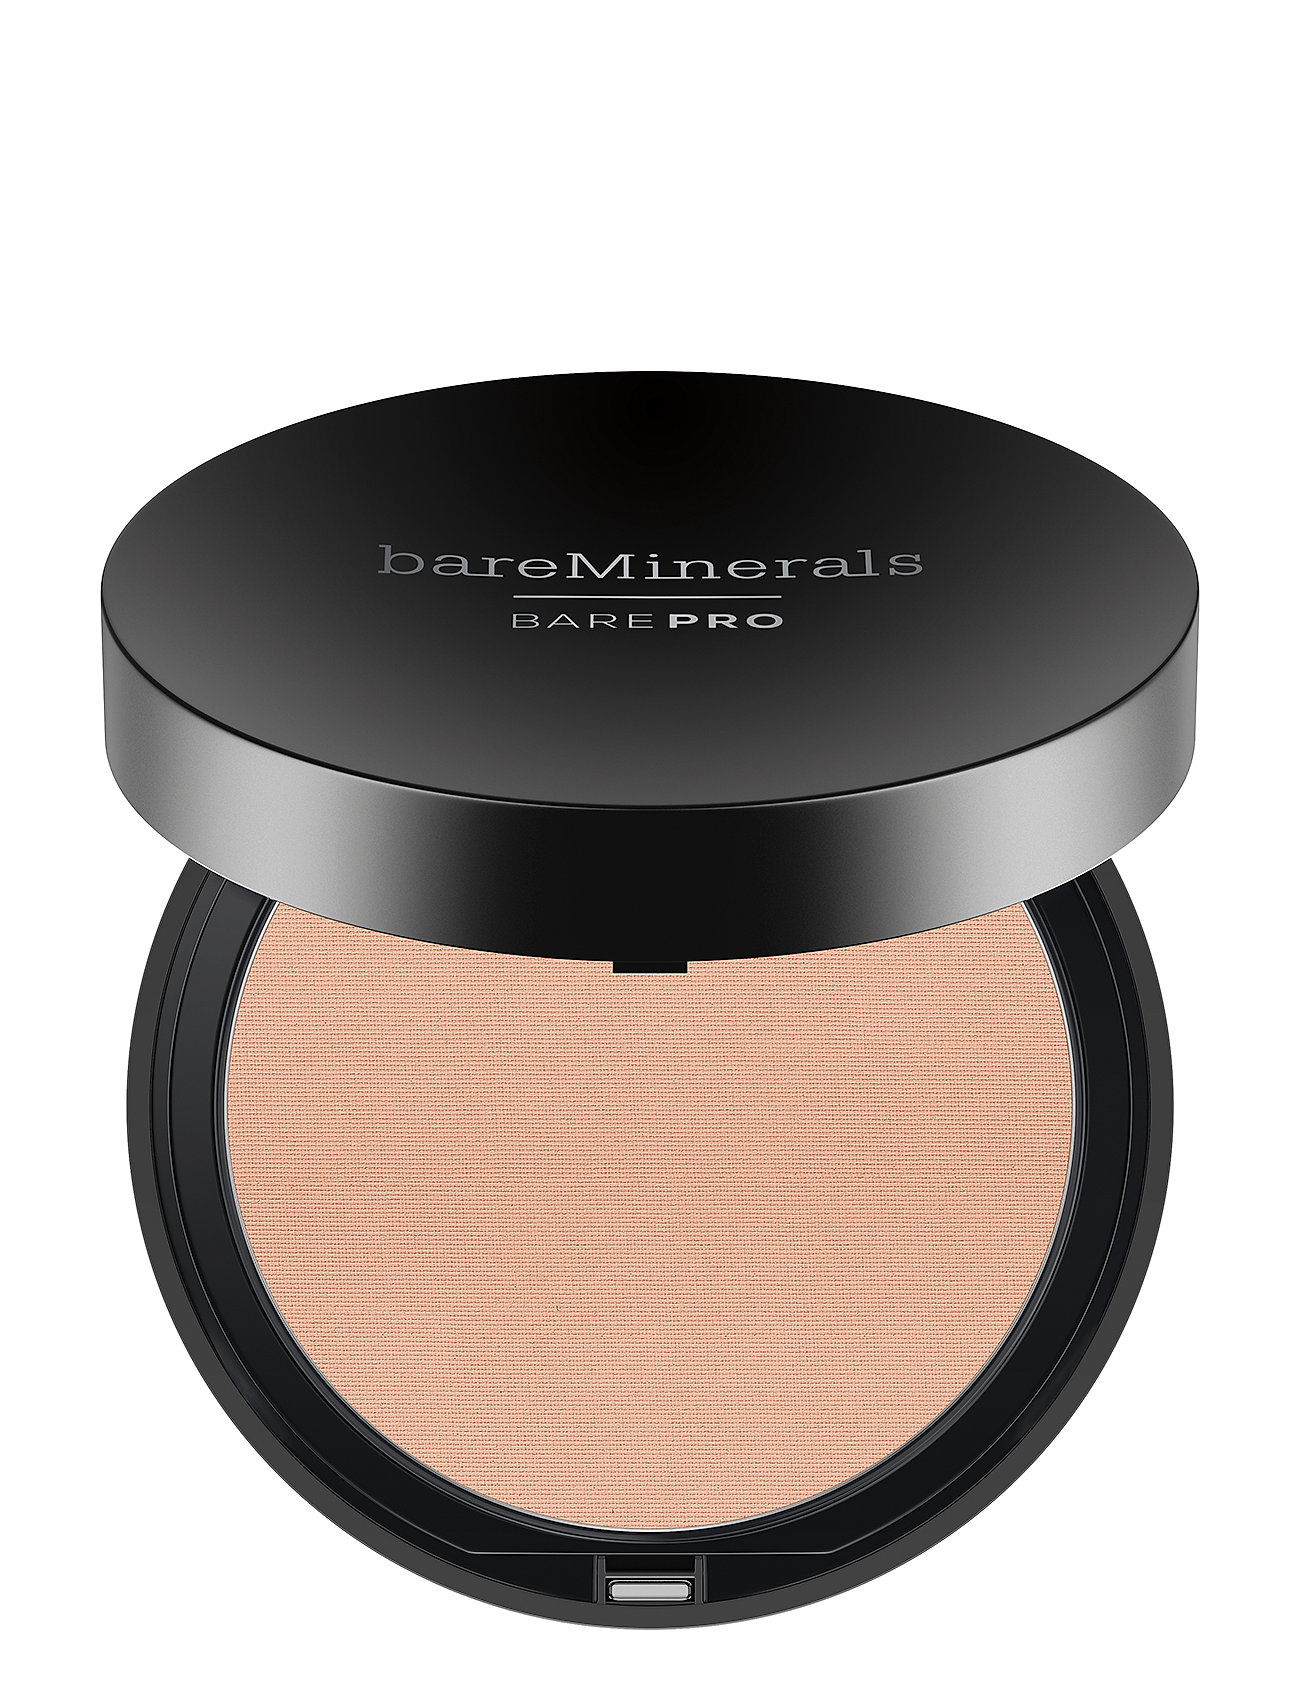 Image of Barepro Performance Wear Powder Foundation Foundation Makeup BareMinerals (3251433705)